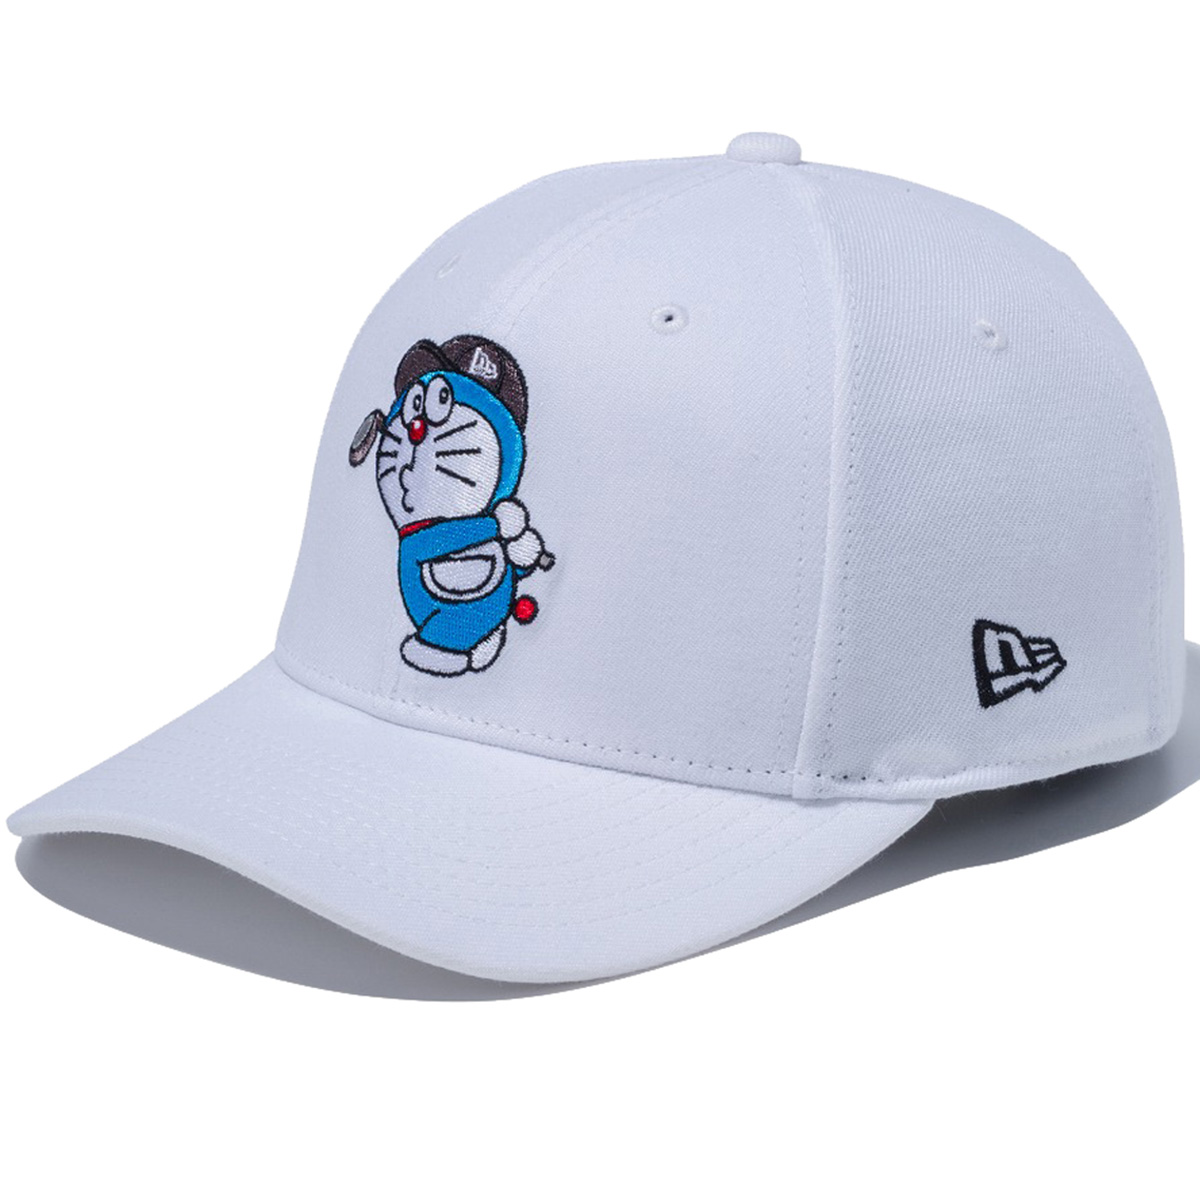 GOLF 950SS DORAEMON SWING DORA キャップ